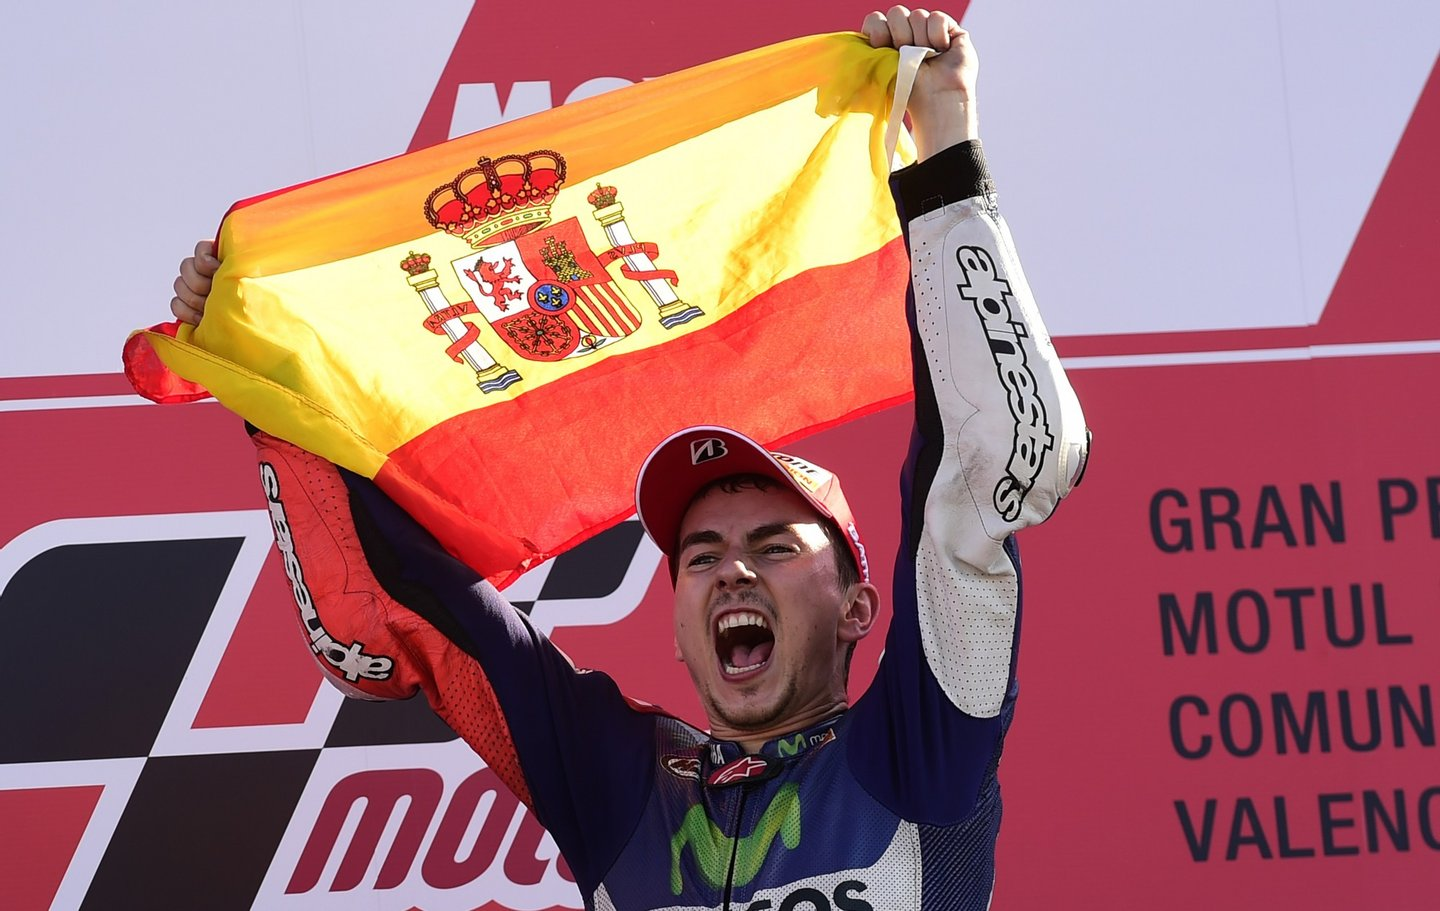 Movistar Yamaha's Spanish rider Jorge Lorenzo celebrates on the podium winning the race and the 2015 MotoGP world championship tiltle after the MotoGP motorcycling race at the Valencia Grand Prix at Ricardo Tormo racetrack in Cheste, near Valencia on November 8, 2015. AFP PHOTO / JAVIER SORIANO (Photo credit should read JAVIER SORIANO/AFP/Getty Images)